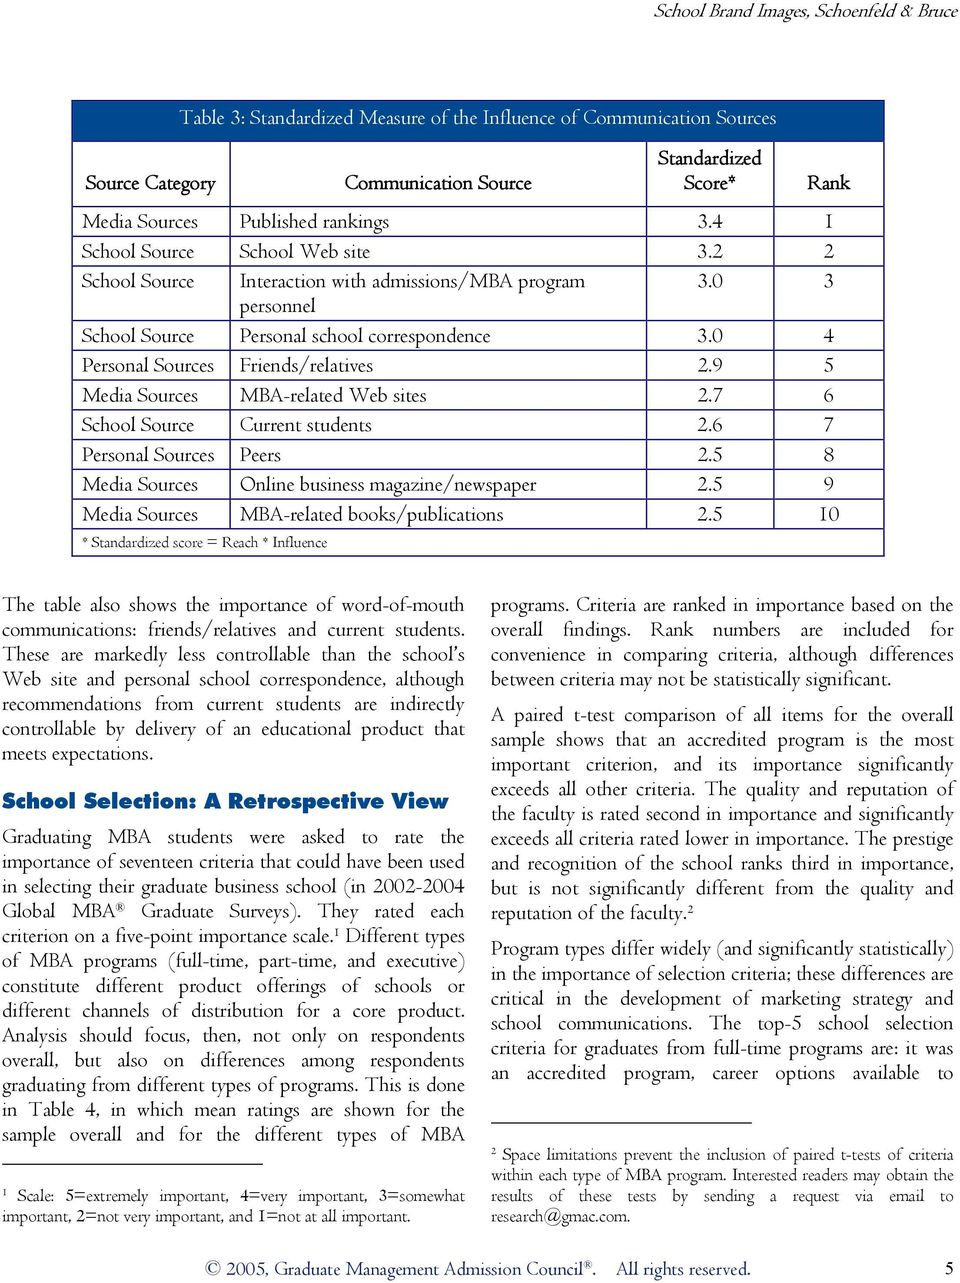 9 5 Media Sources MBA-related Web sites 2.7 6 School Source Current students 2.6 7 Personal Sources Peers 2.5 8 Media Sources Online business magazine/newspaper 2.